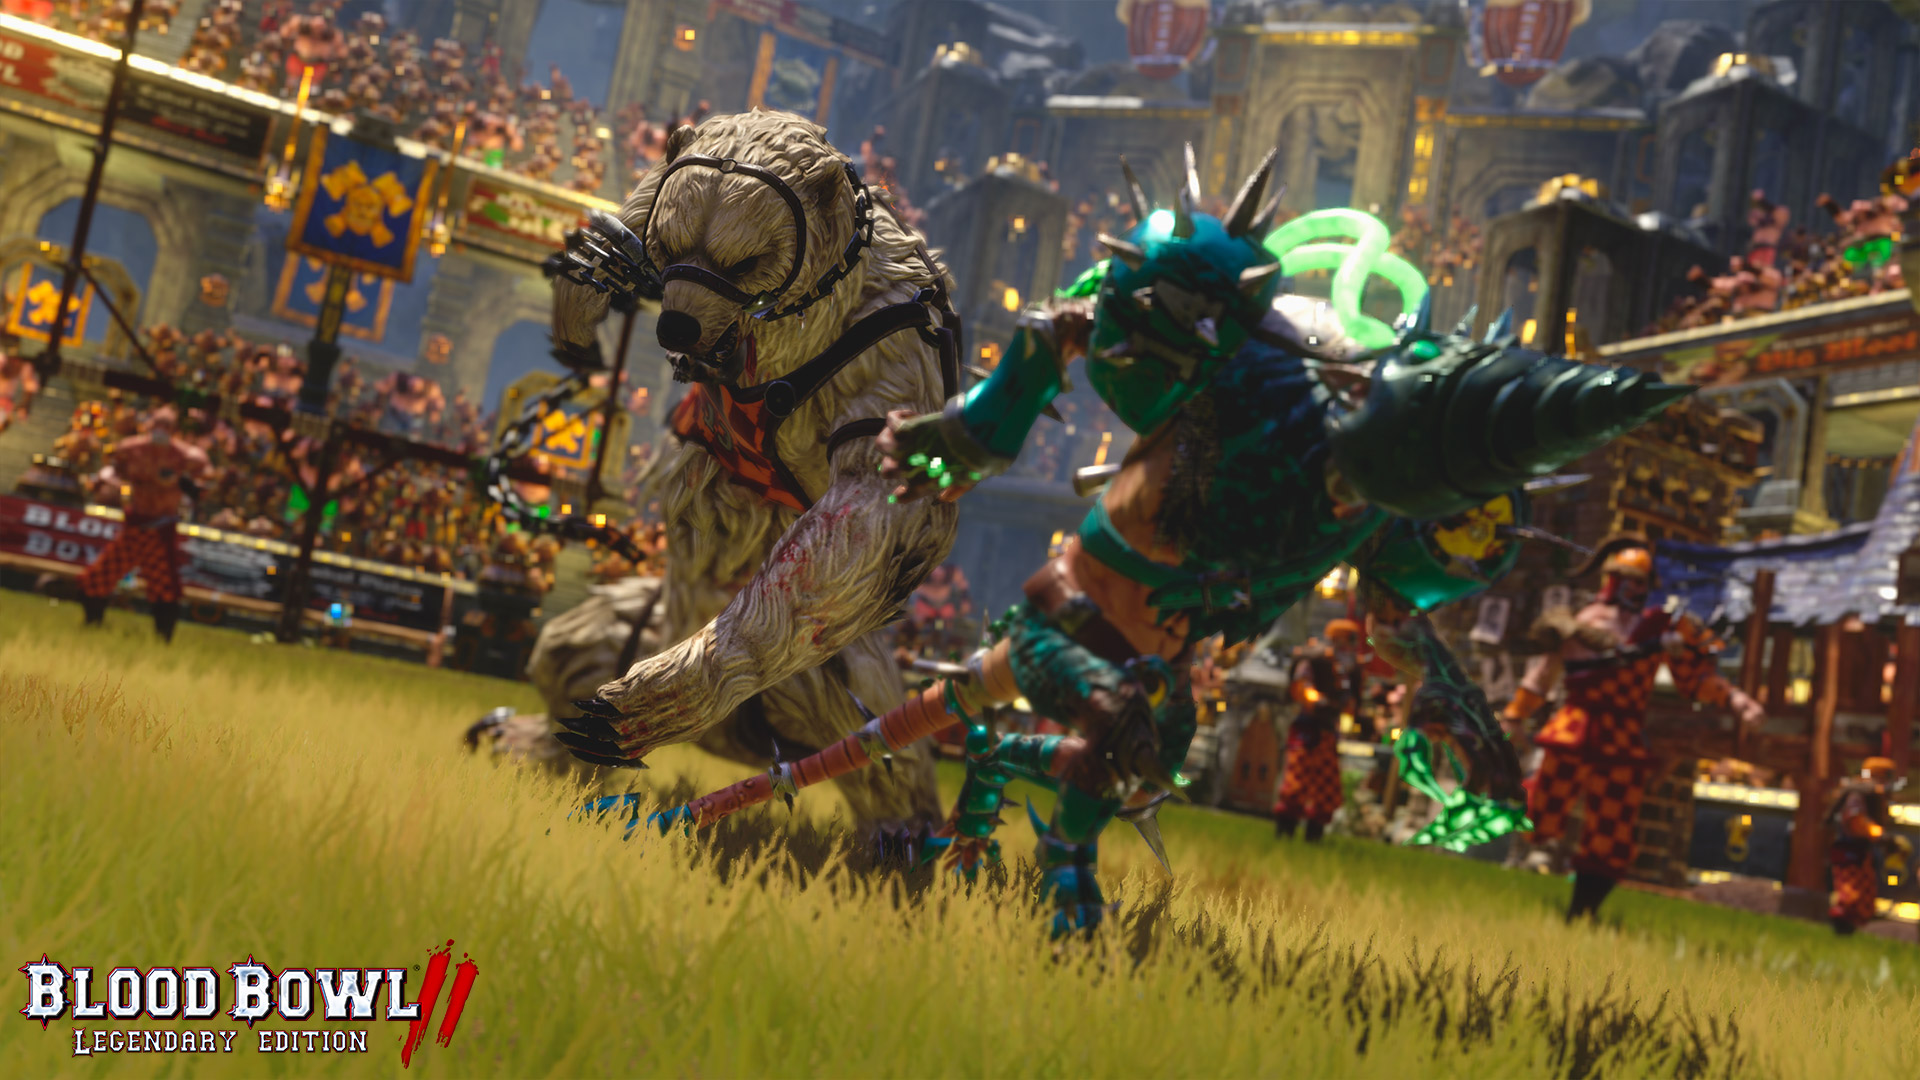 Blood Bowl chaos édition Matchmaking